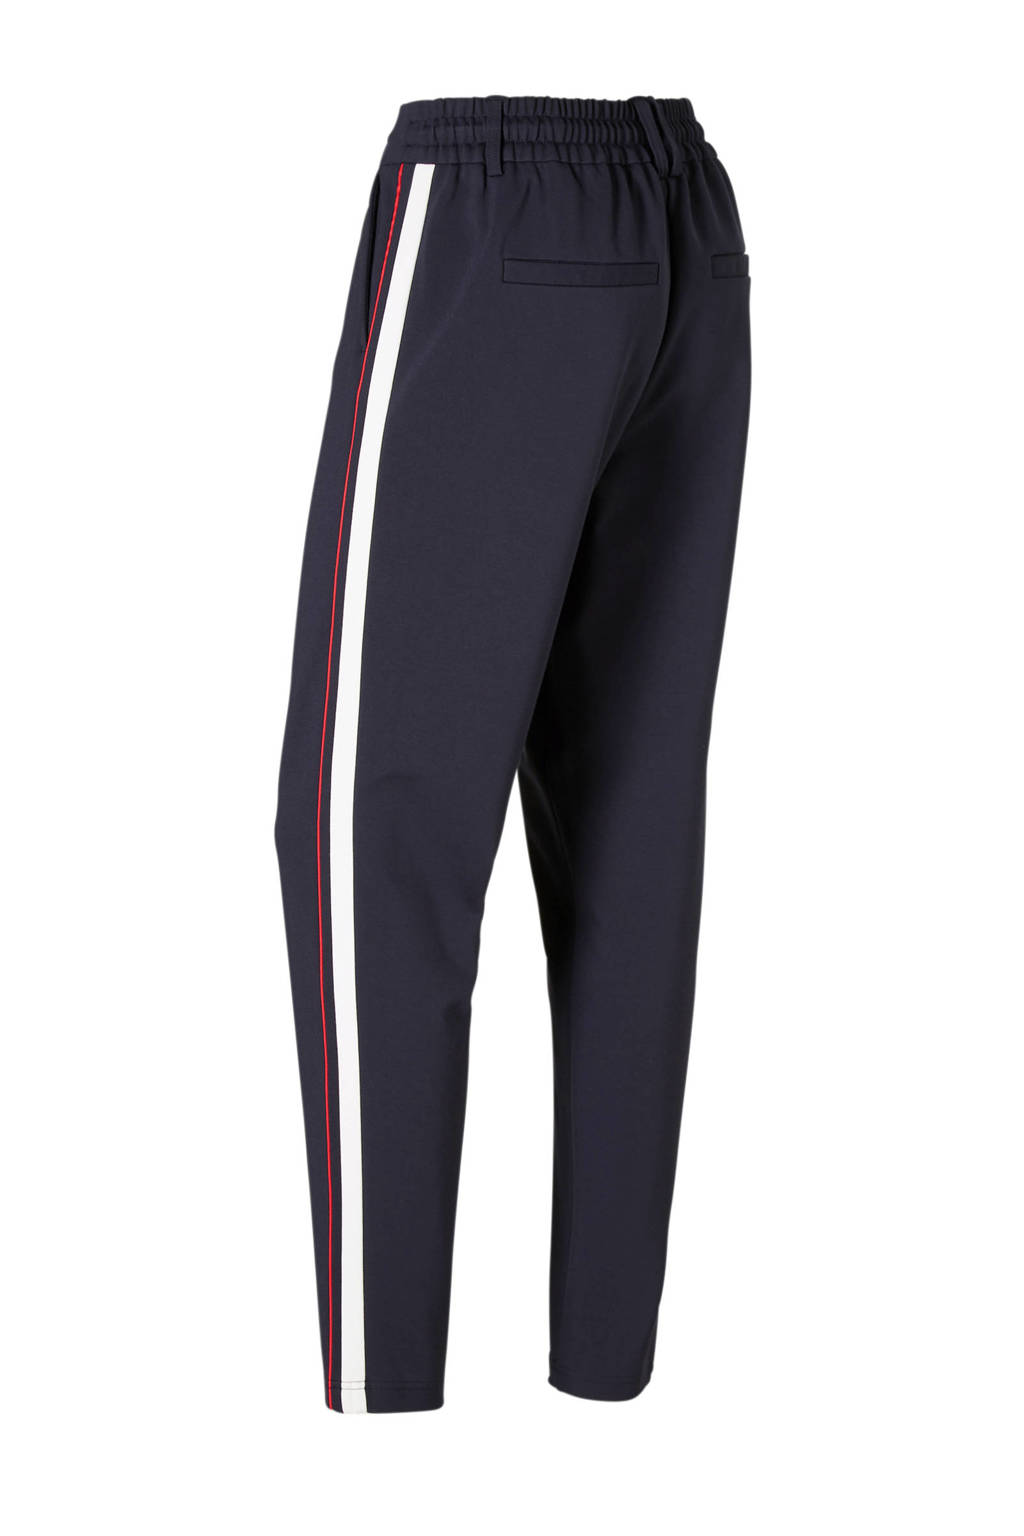 a877caf11eb9f0 ONLY broek met zij strepen, Donkerblauw/rood/wit